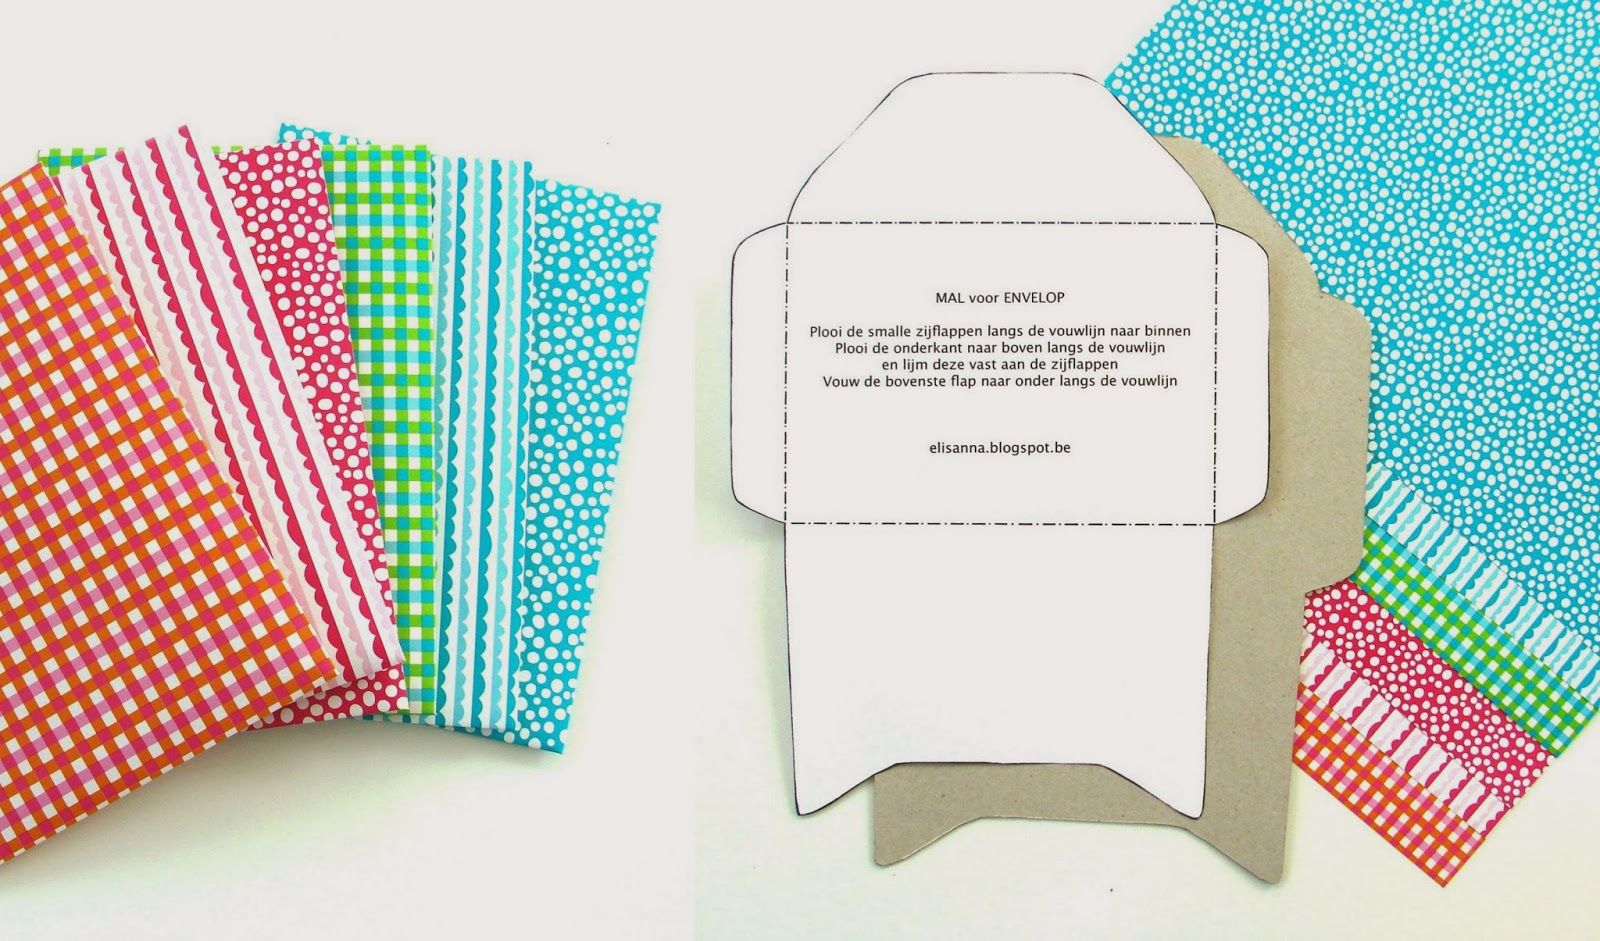 Transparant Papier Hema Hema Enveloppen Craft Ideas I Love Enveloppen Maken Knutselen